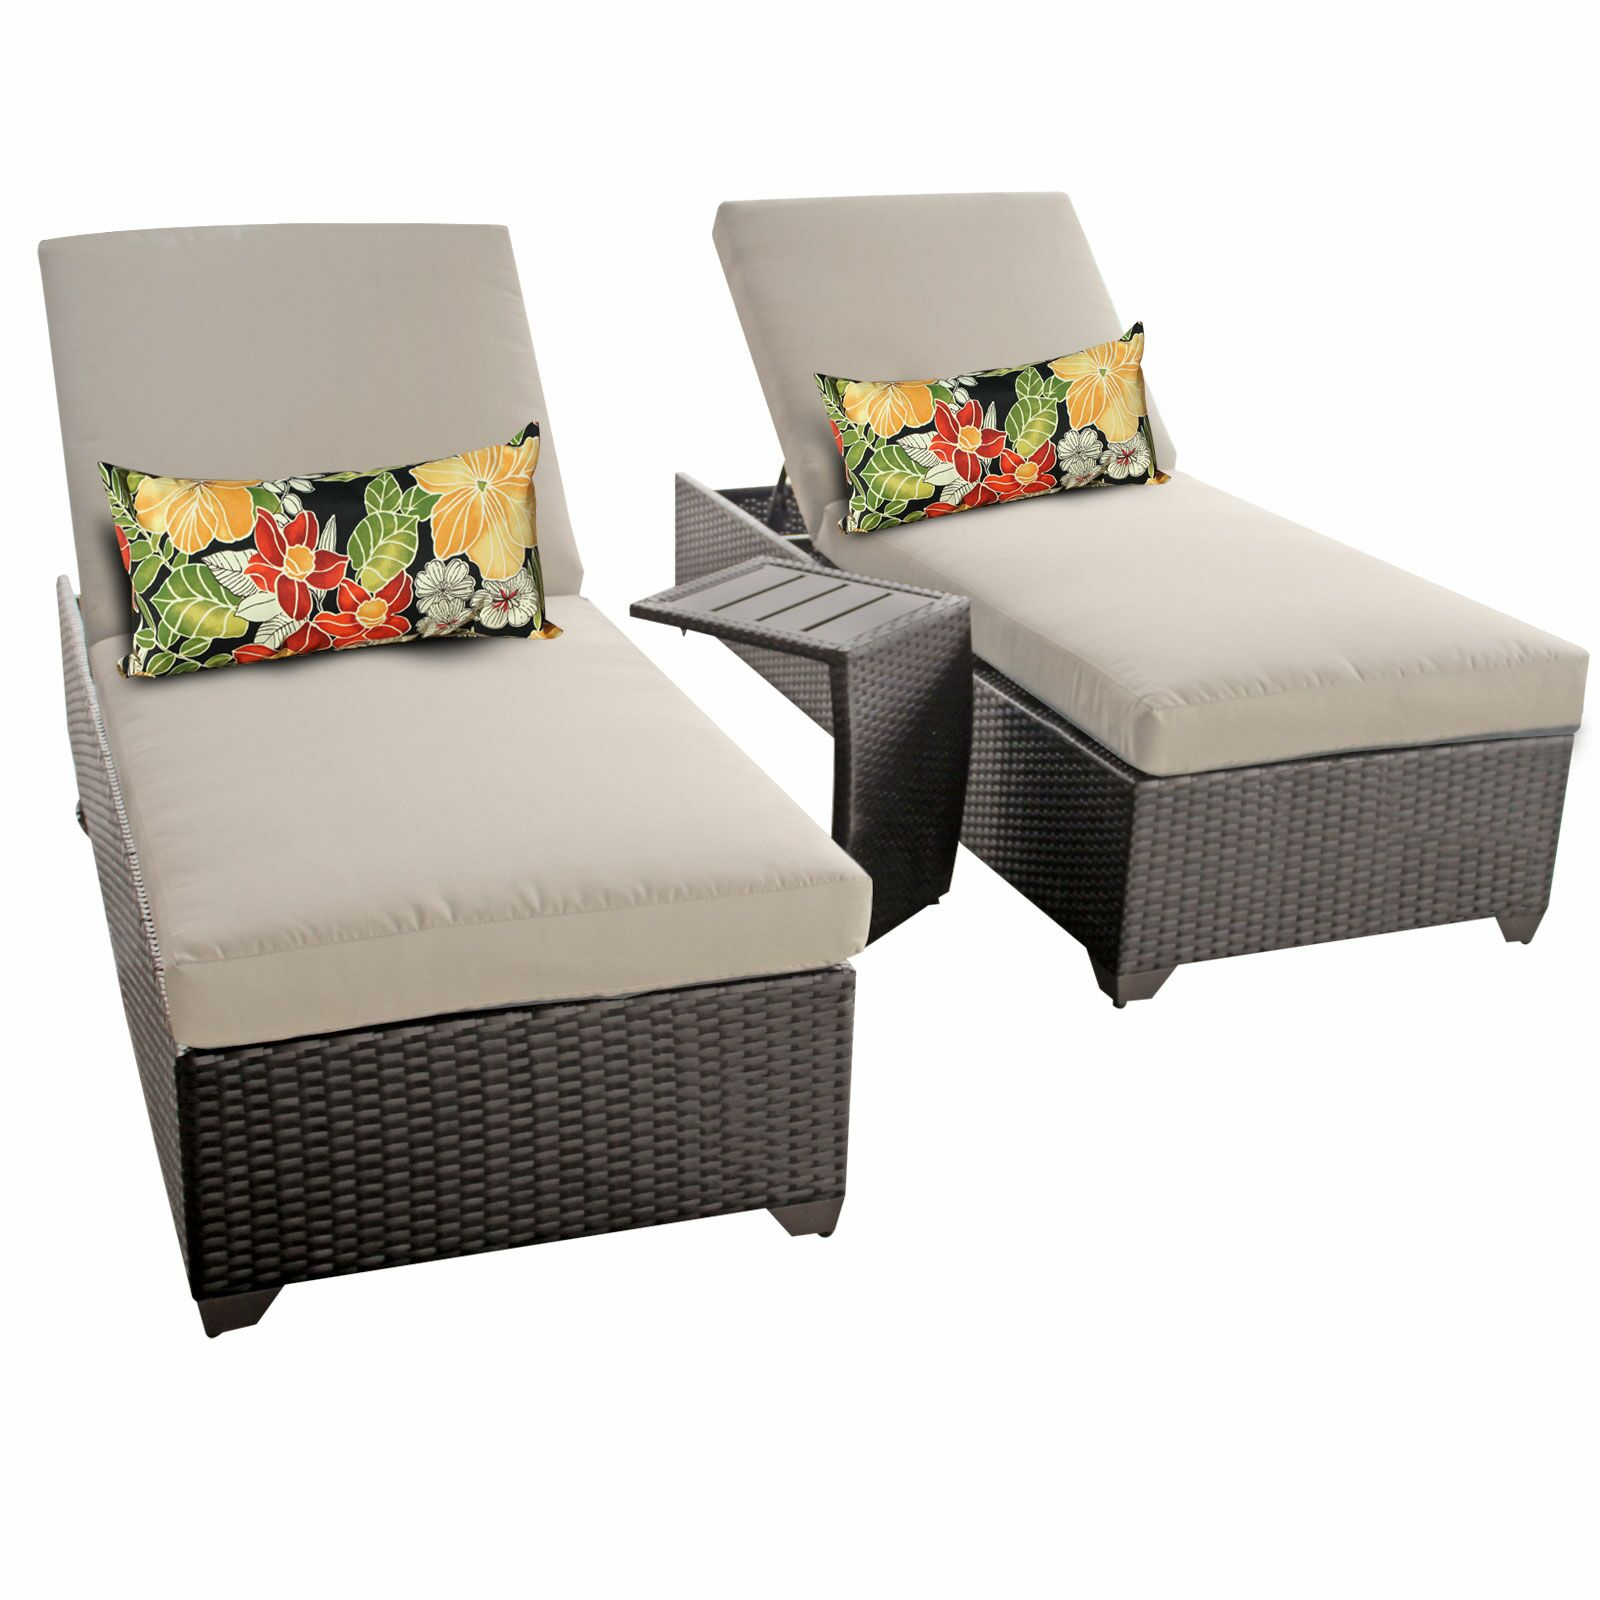 Classic 3 Piece Chaise Lounge Set with Cushion Color: Beige